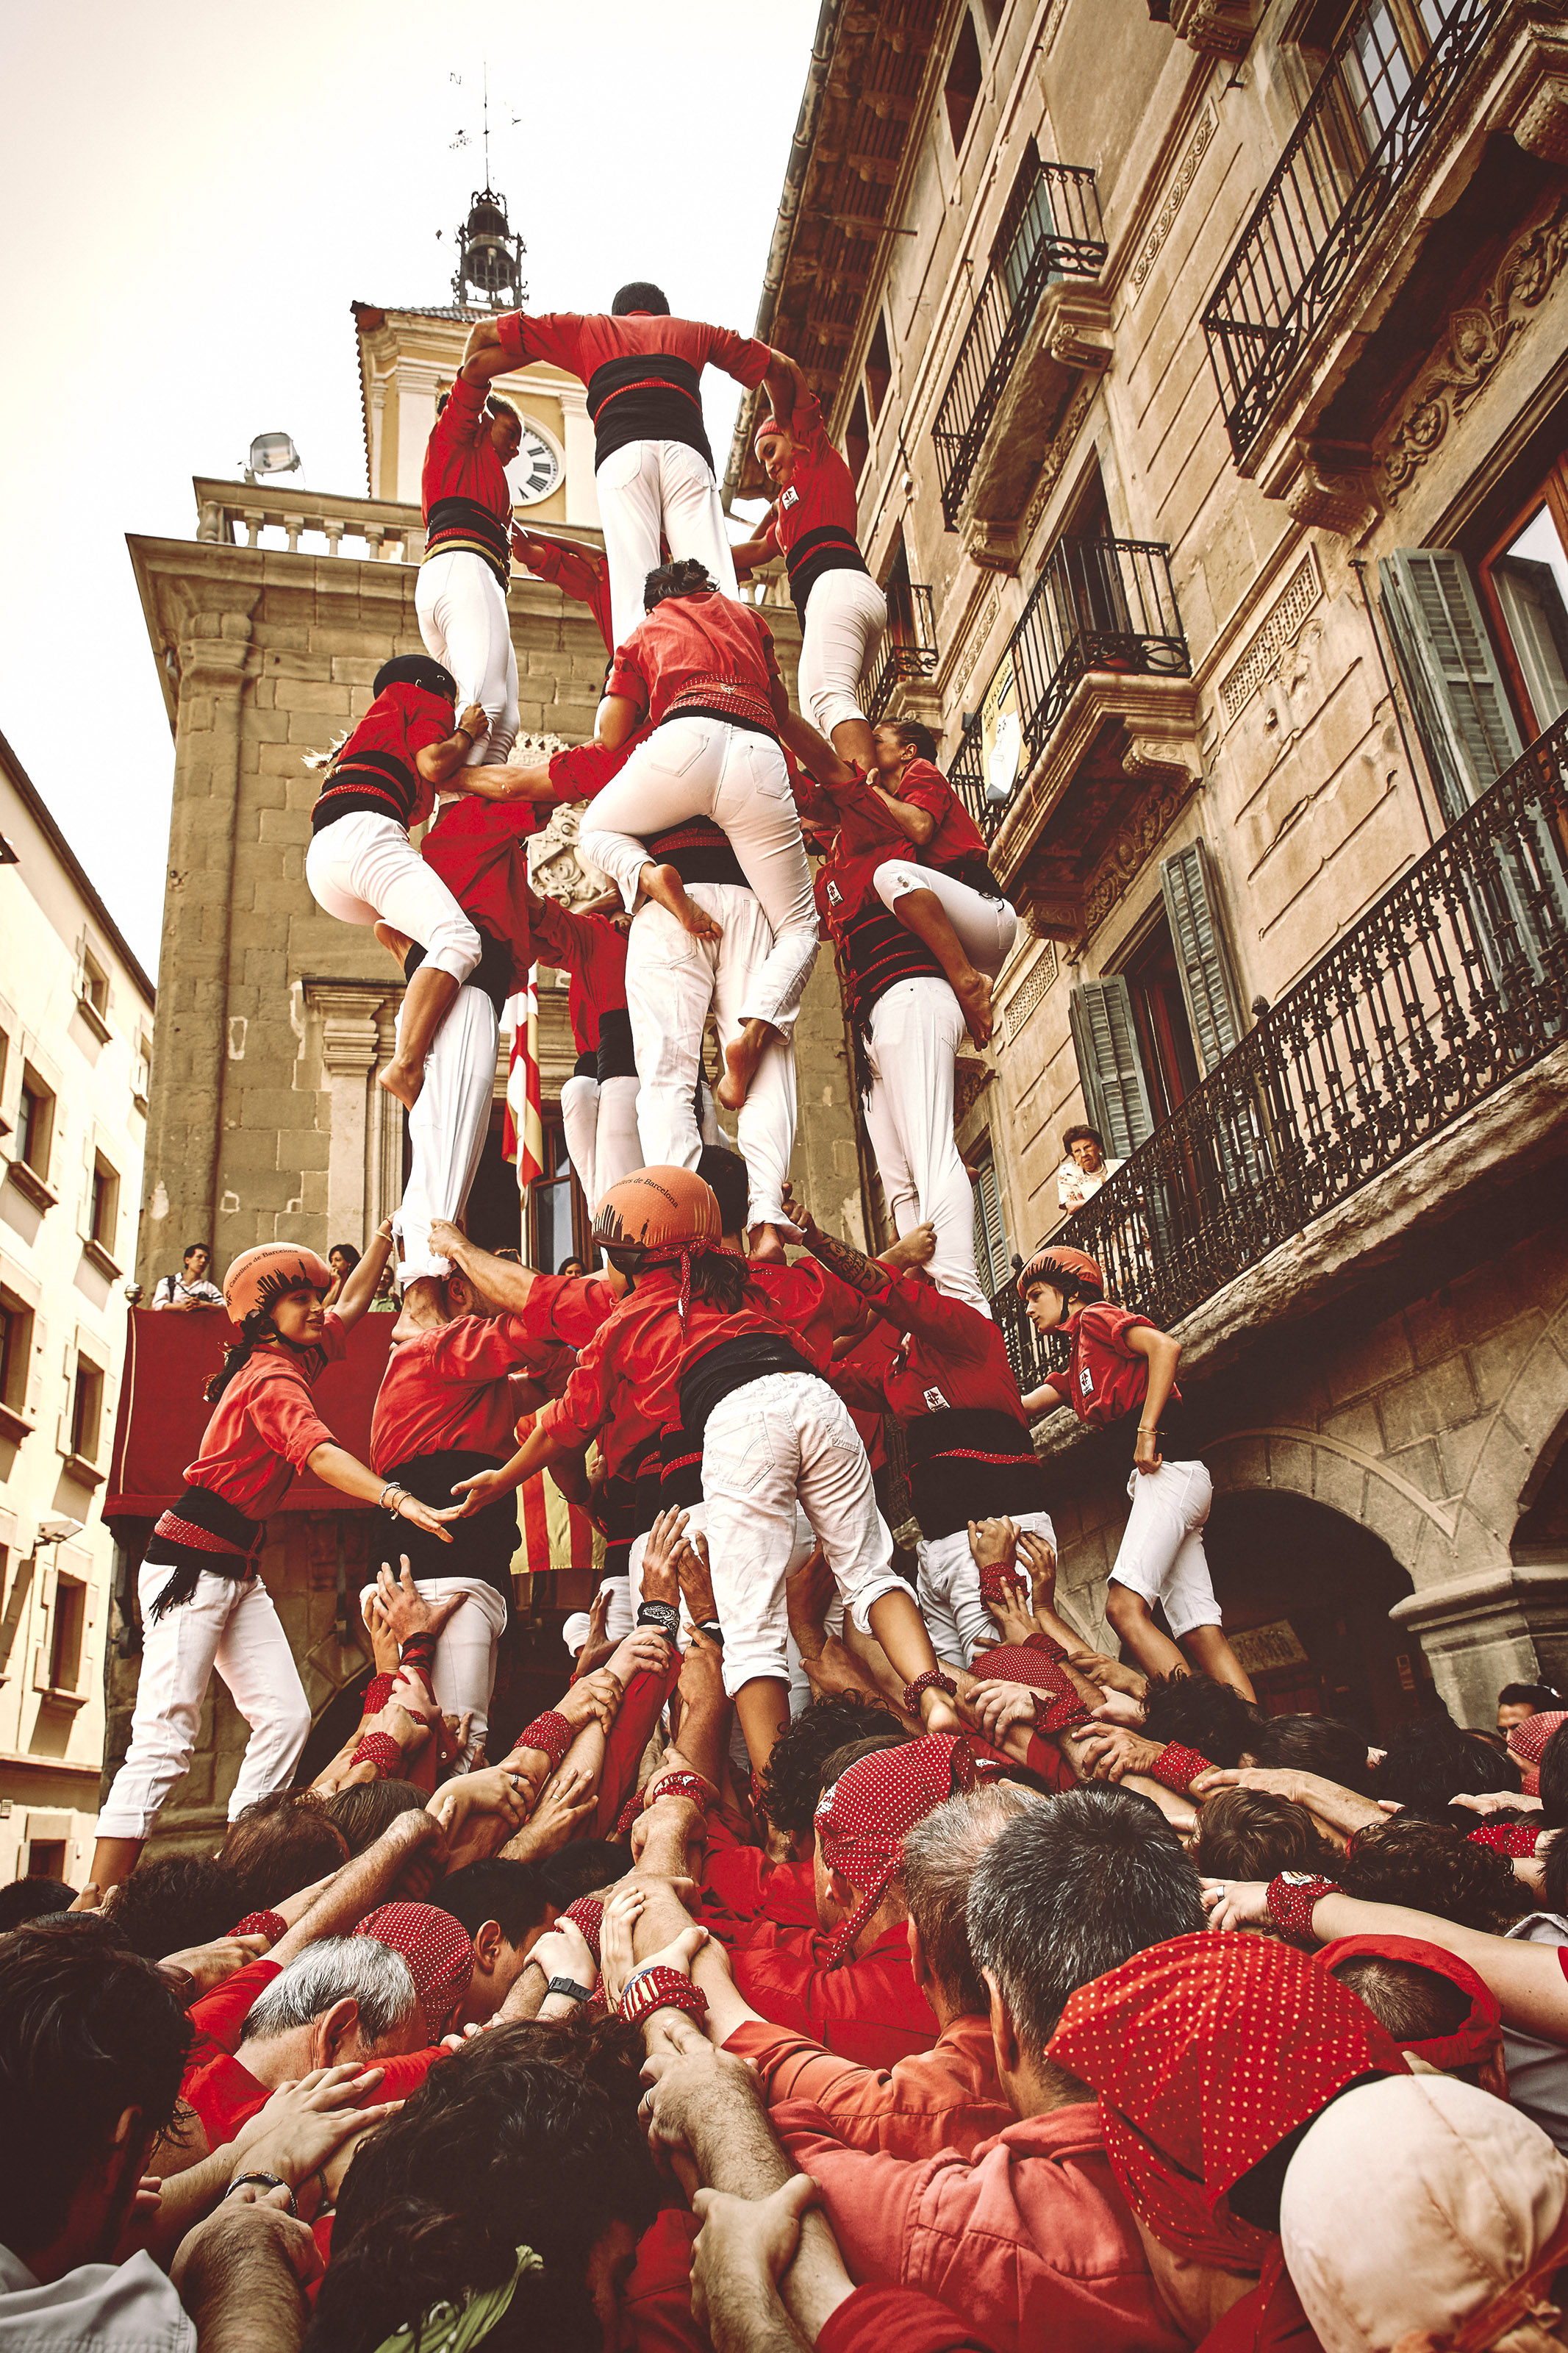 Castellers building a human tower